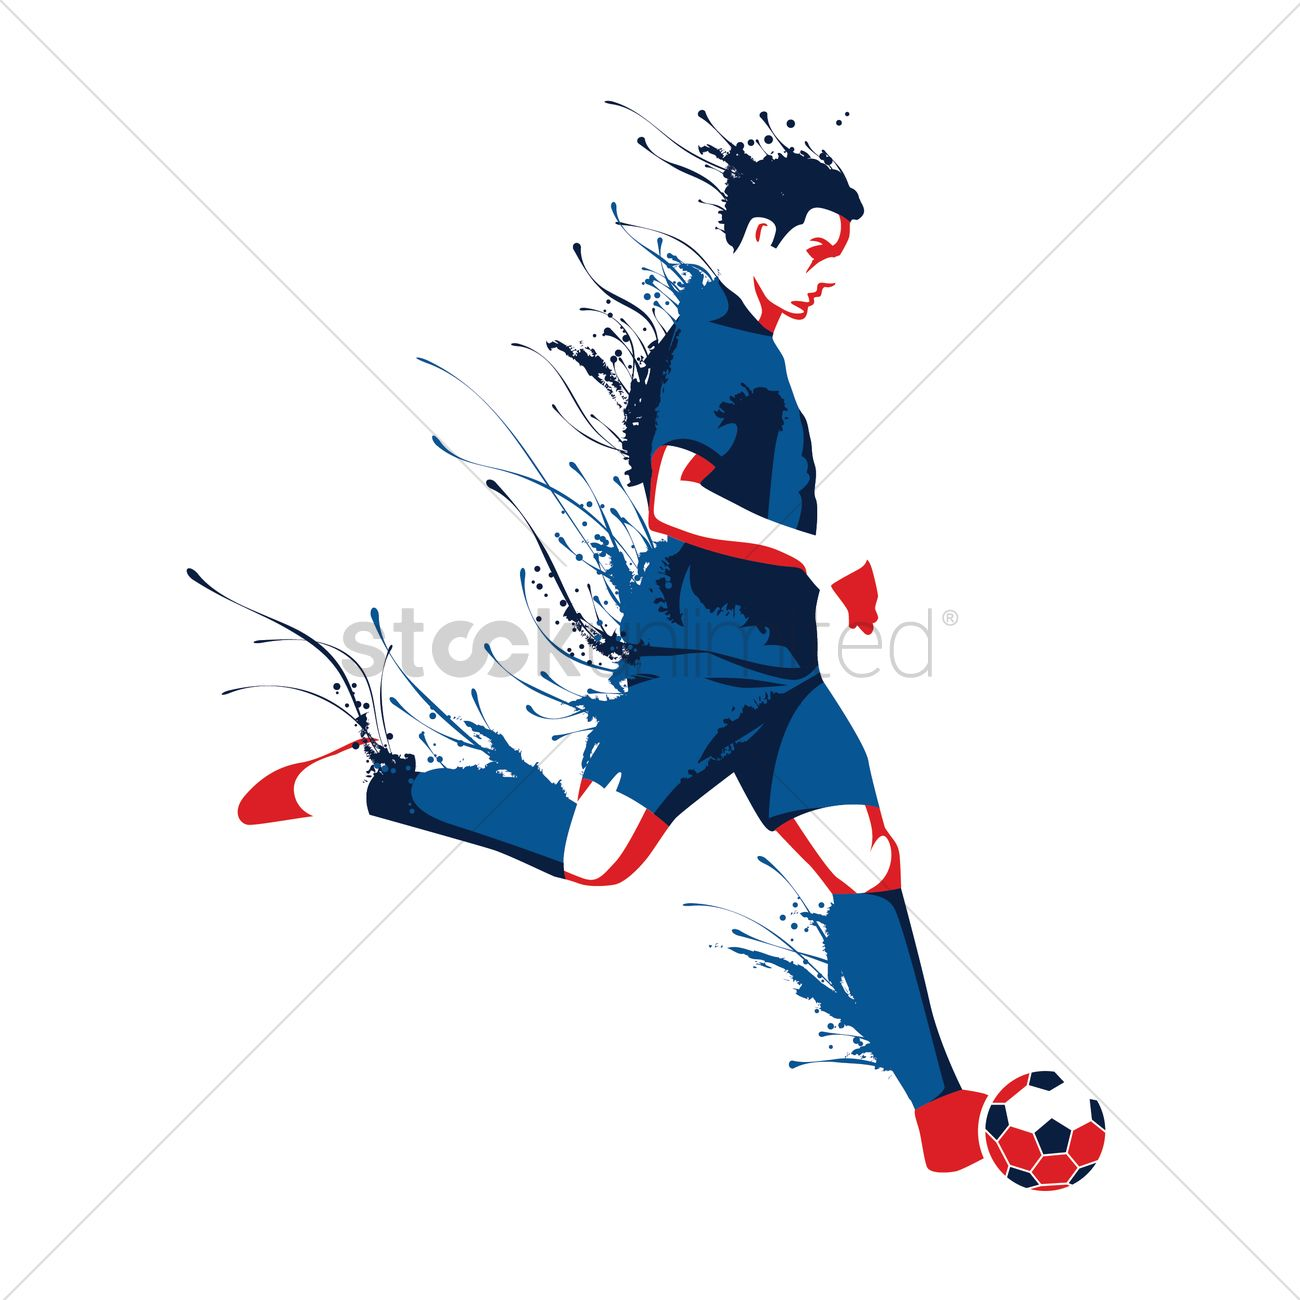 Soccer Player Vector Image 1818071 Stockunlimited